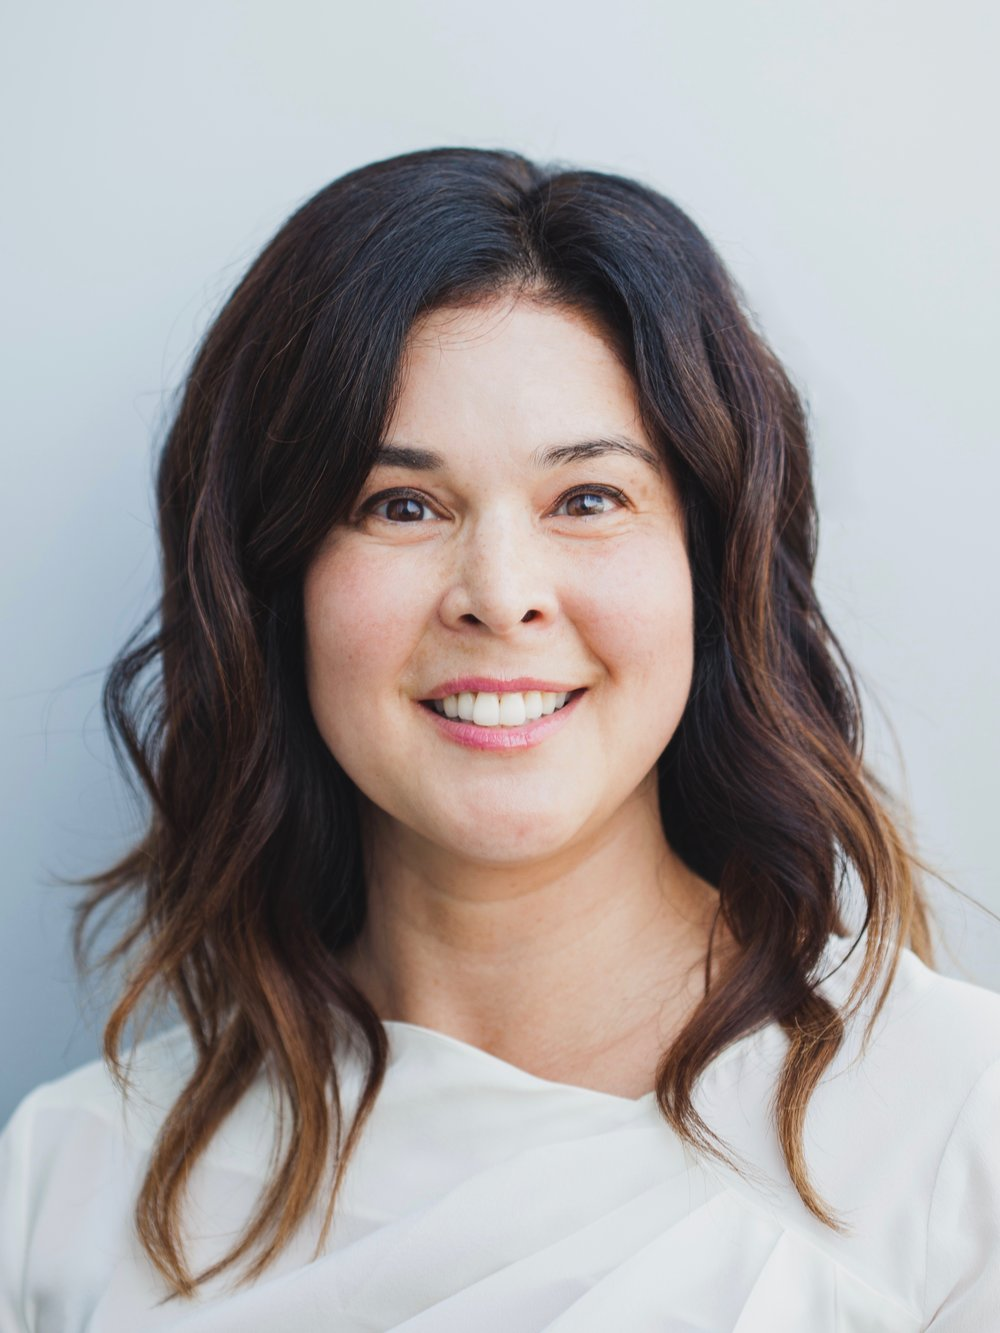 Nicole recently joined the Mindset family in May 2018 as Alison's assistant and team coordinator and is the friendly face that greets everyone in our organization …  >>>